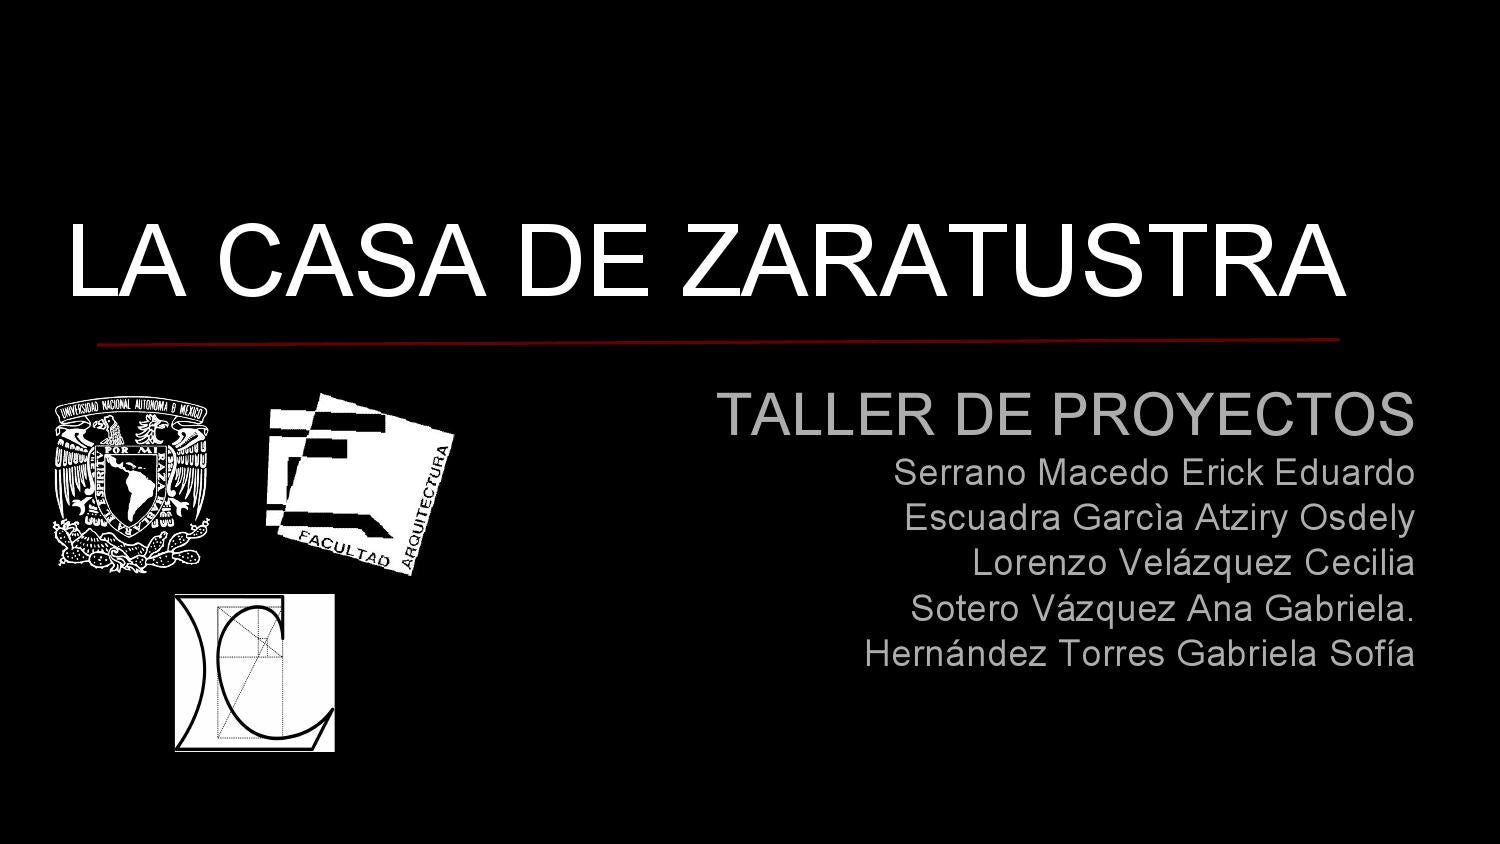 cap 1 la casa de zaratustra by taller leduc 02 issuu. Black Bedroom Furniture Sets. Home Design Ideas